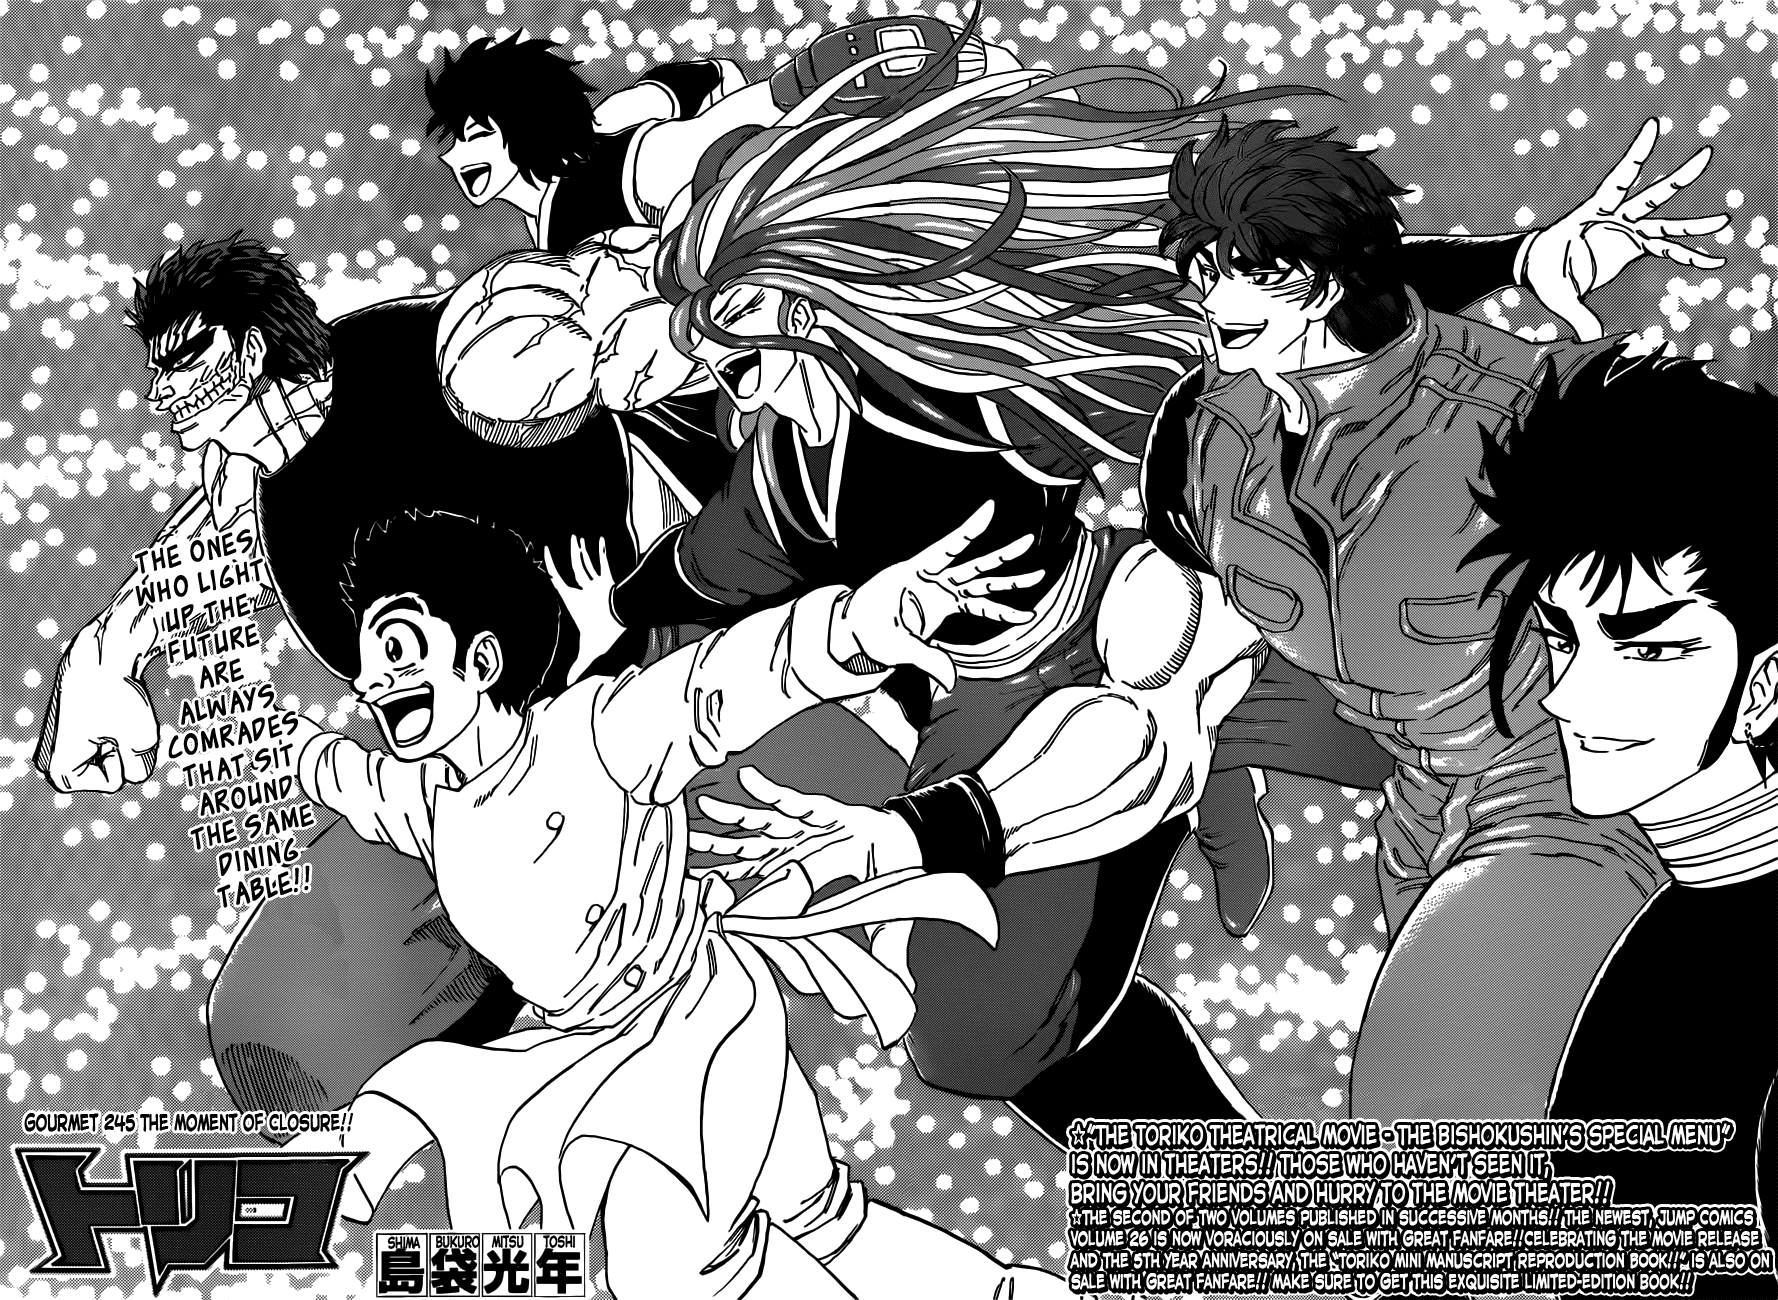 Toriko - The Moment of Closure!! - 2